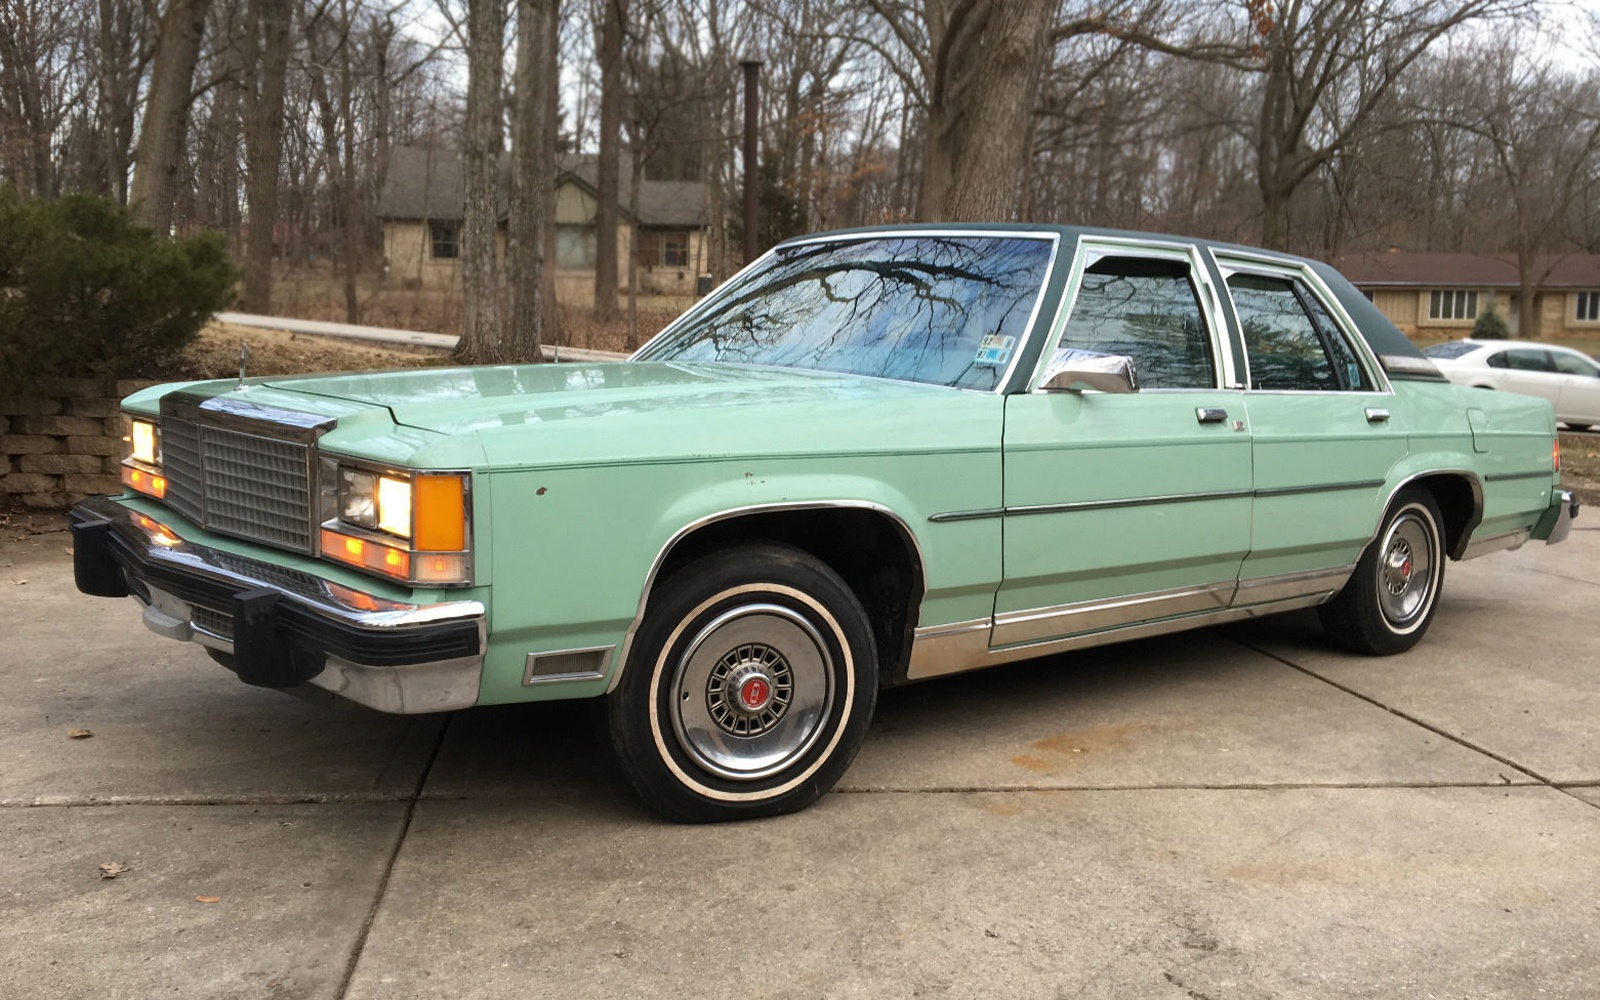 pre fox panther 1979 ford ltd crown victoria rh barnfinds com 2012 Ford Crown Victoria 2013 Ford Crown Victoria